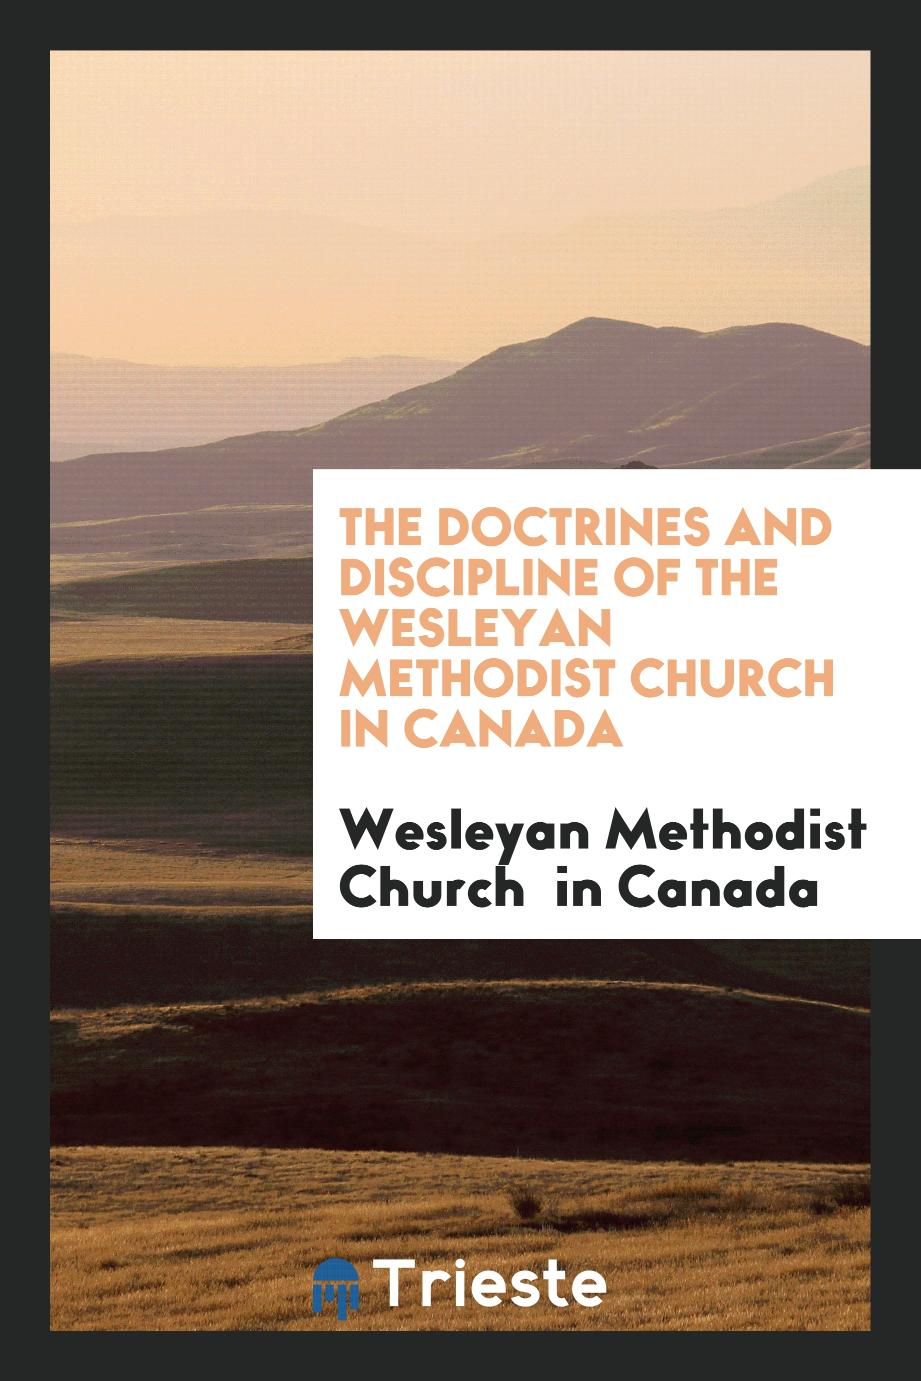 The doctrines and discipline of the Wesleyan Methodist Church in Canada